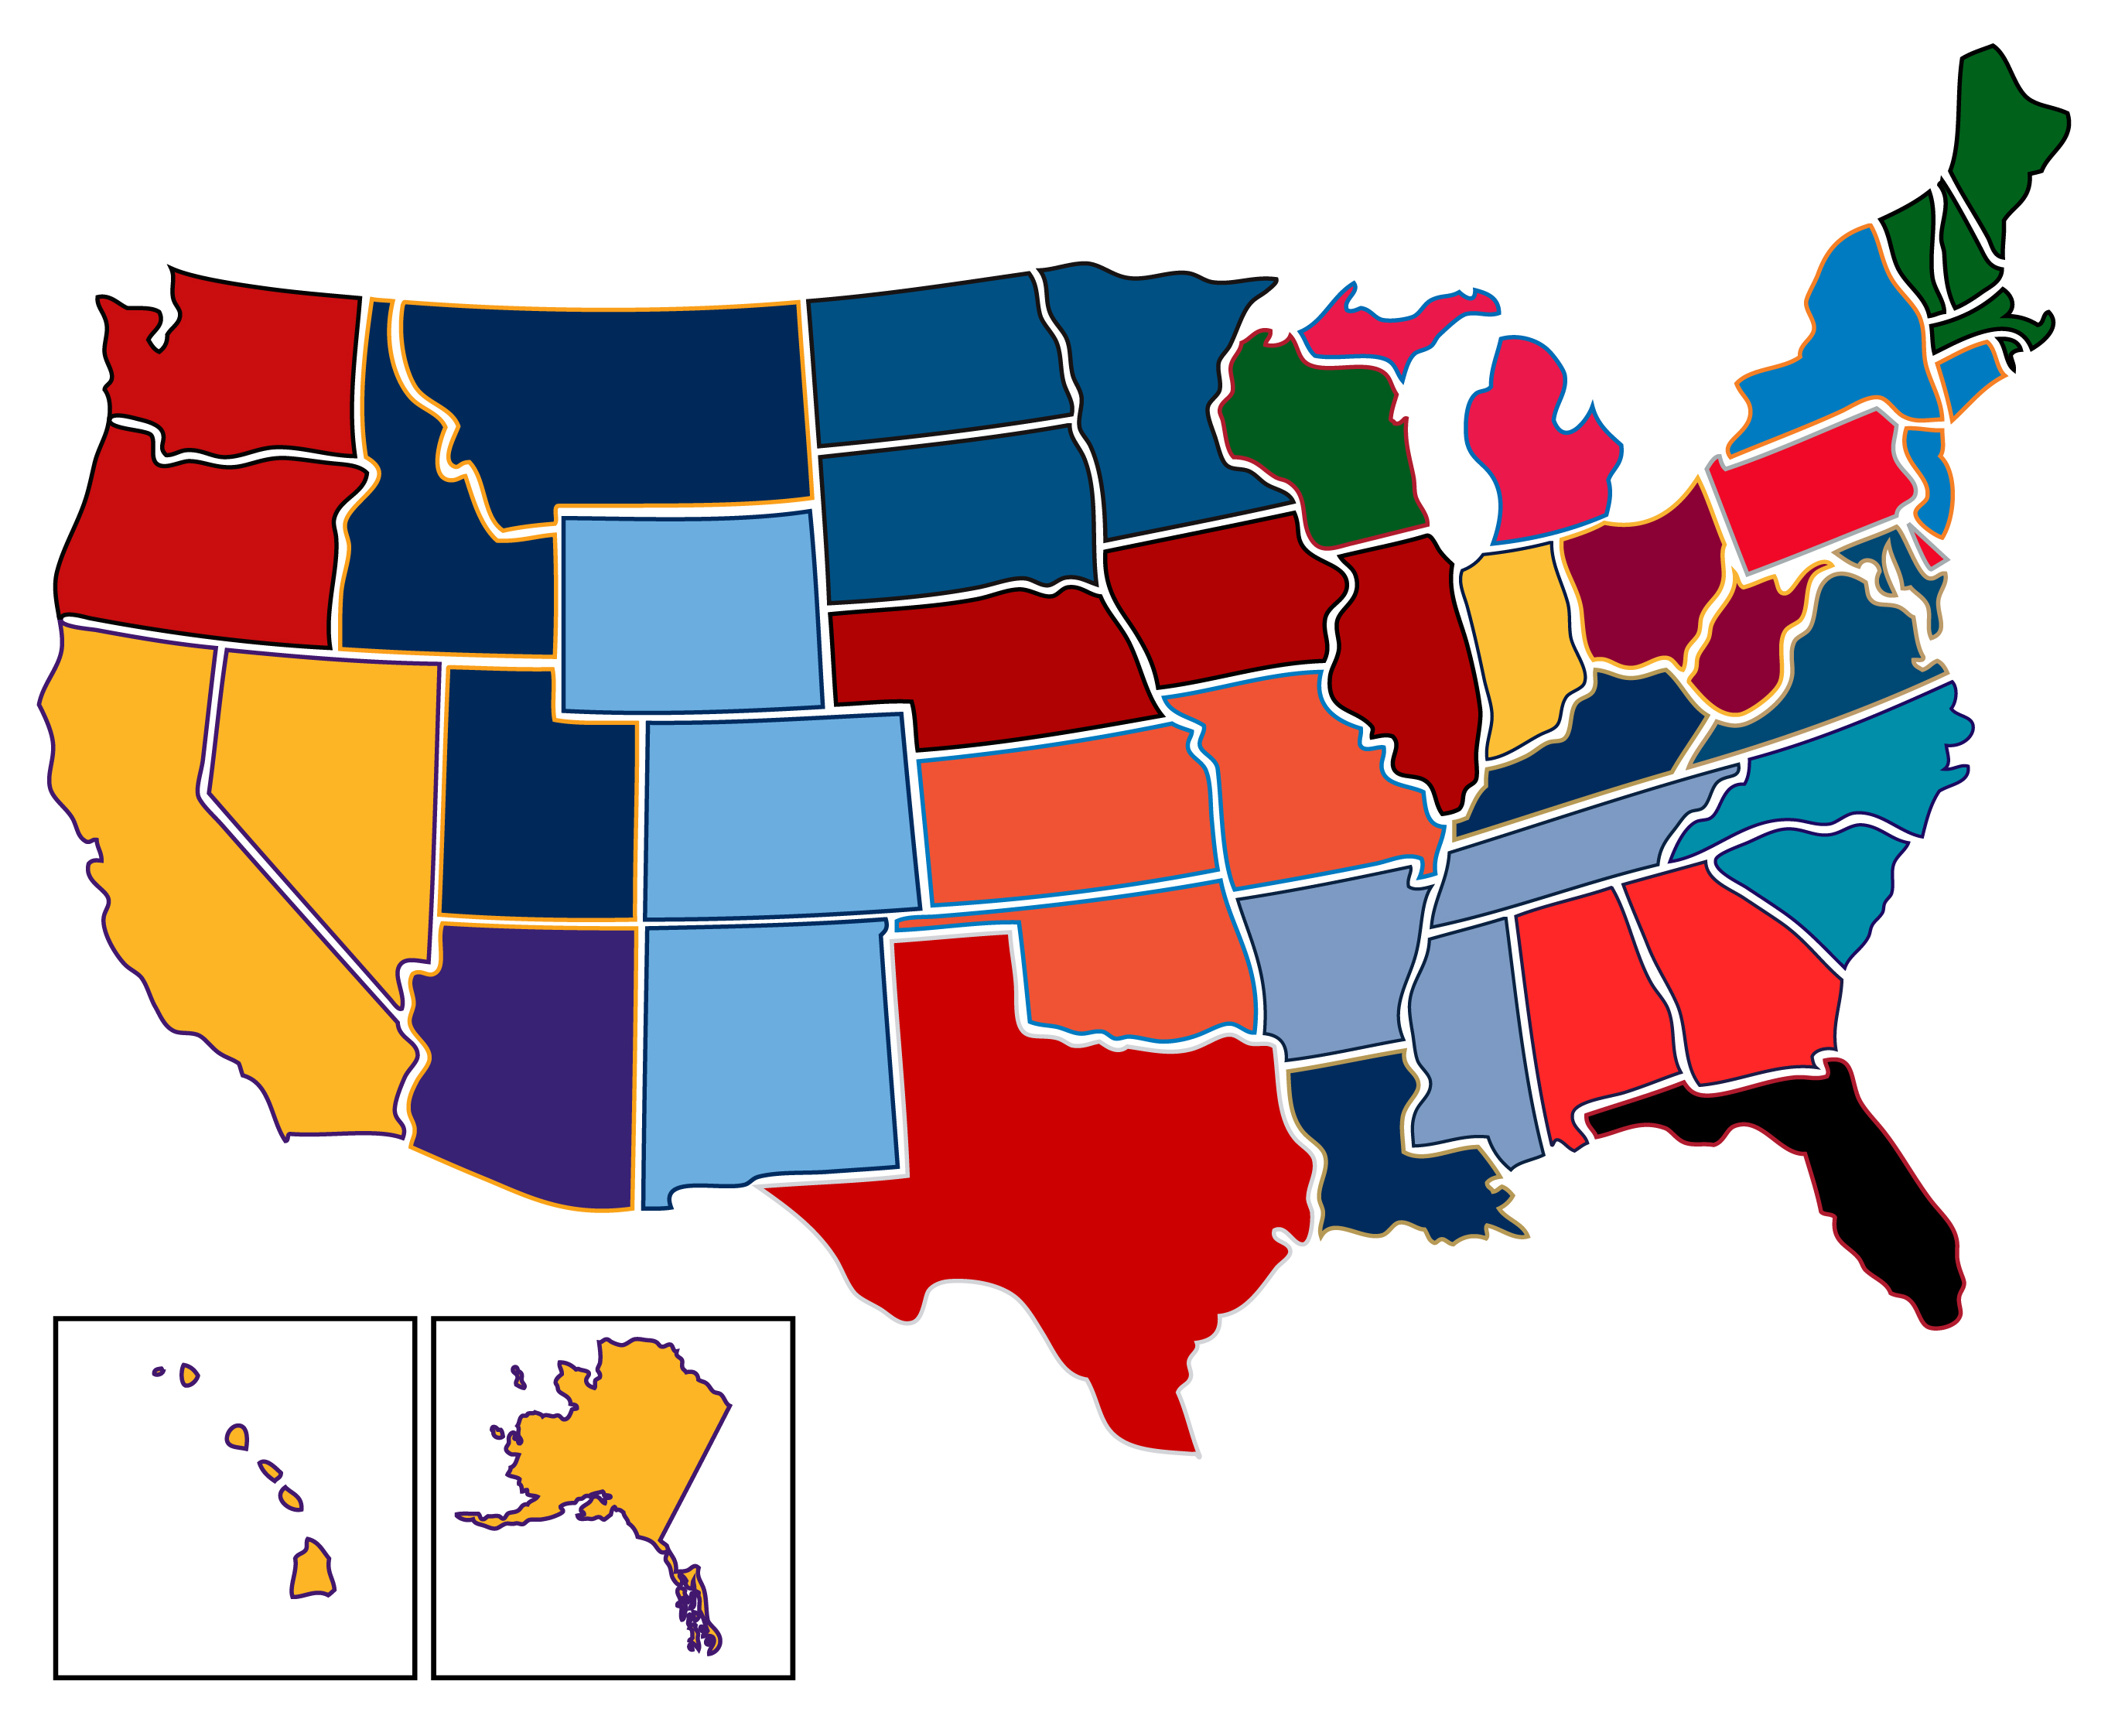 denver colorado map usa with Most Popular Nba Teams By Us State on In Flea Markets furthermore Indianapolis Location On The Us Map besides Colorado together with Tourism G33388 Denver Colorado Vacations in addition K5sk Aspen Co Boulder Colorado.